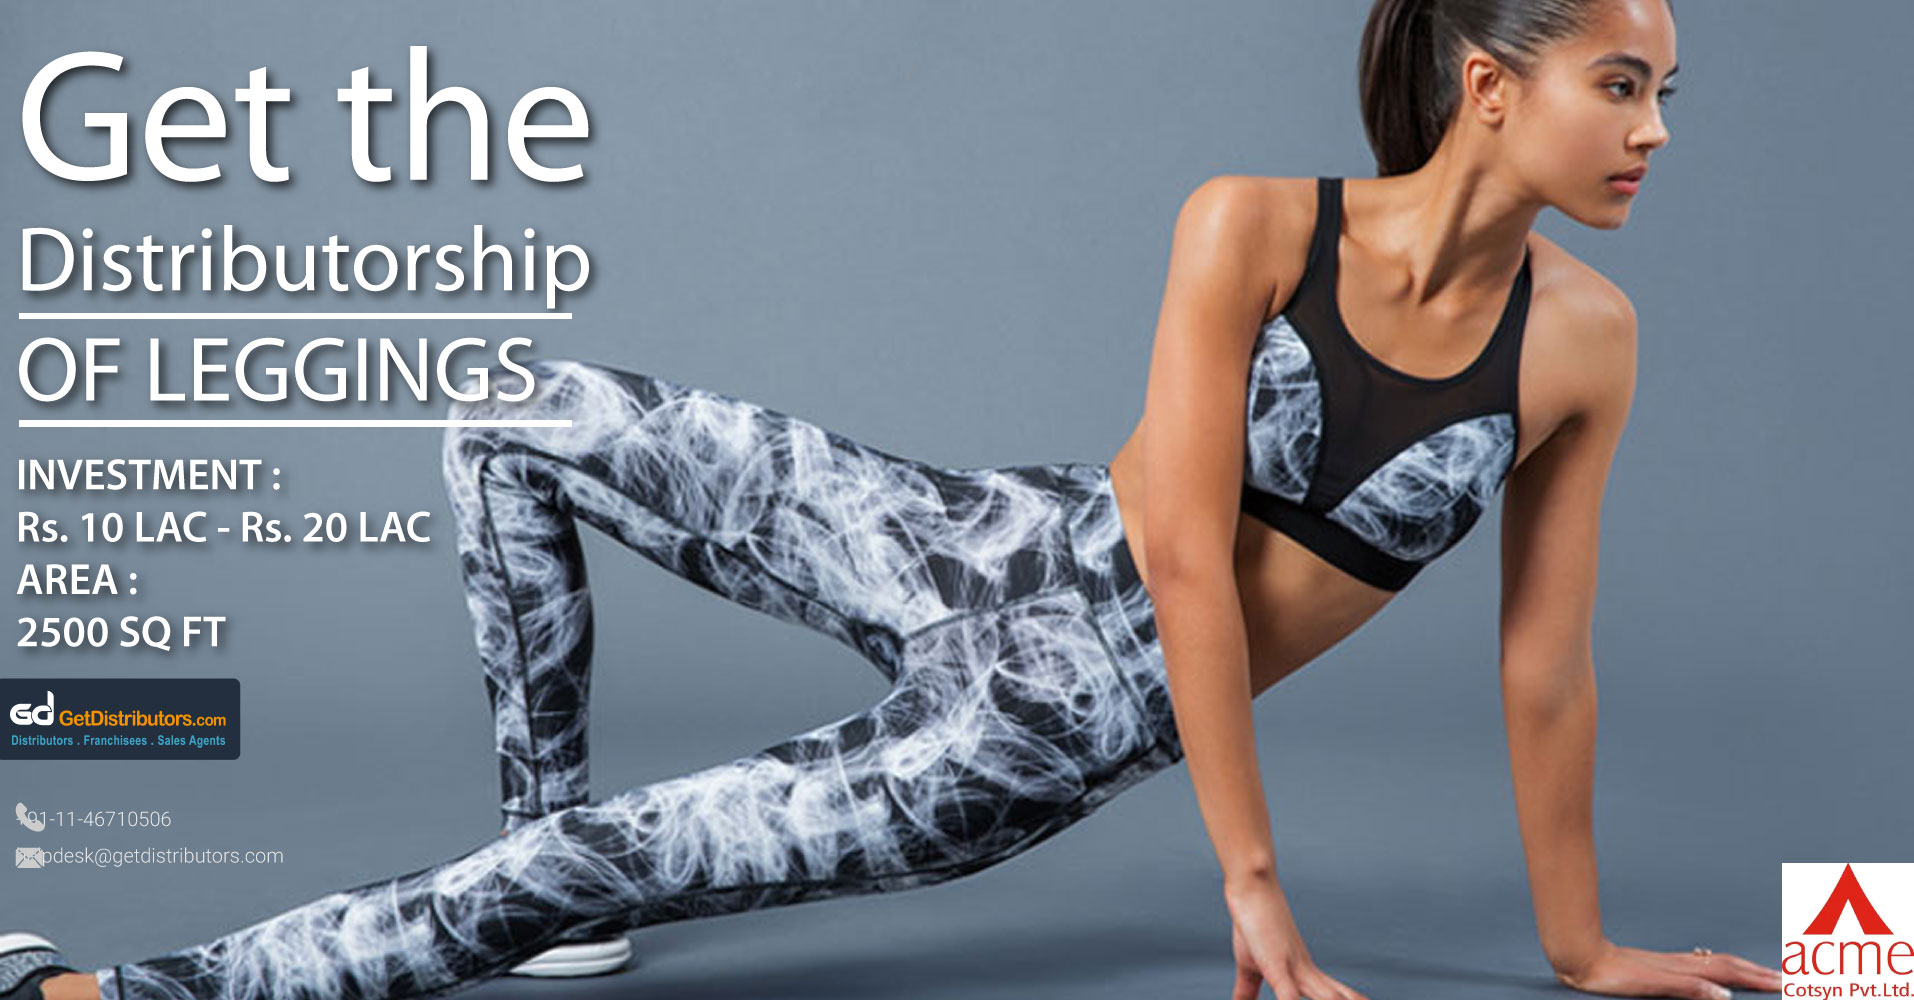 Comfortable and Skin Friendly Leggings By Acme Cotsyn Pvt Ltd